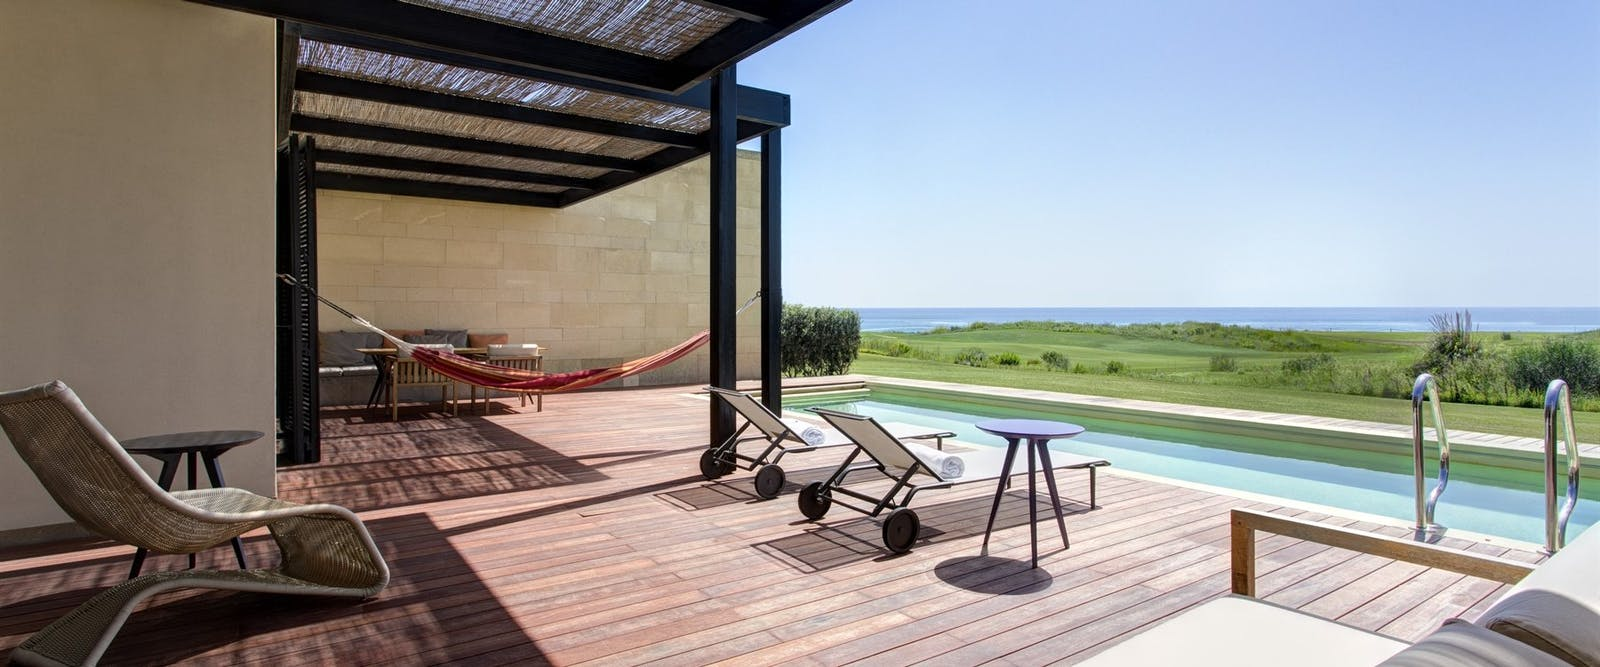 Villa Peonia at Verdura Resort, Sicily, Italy